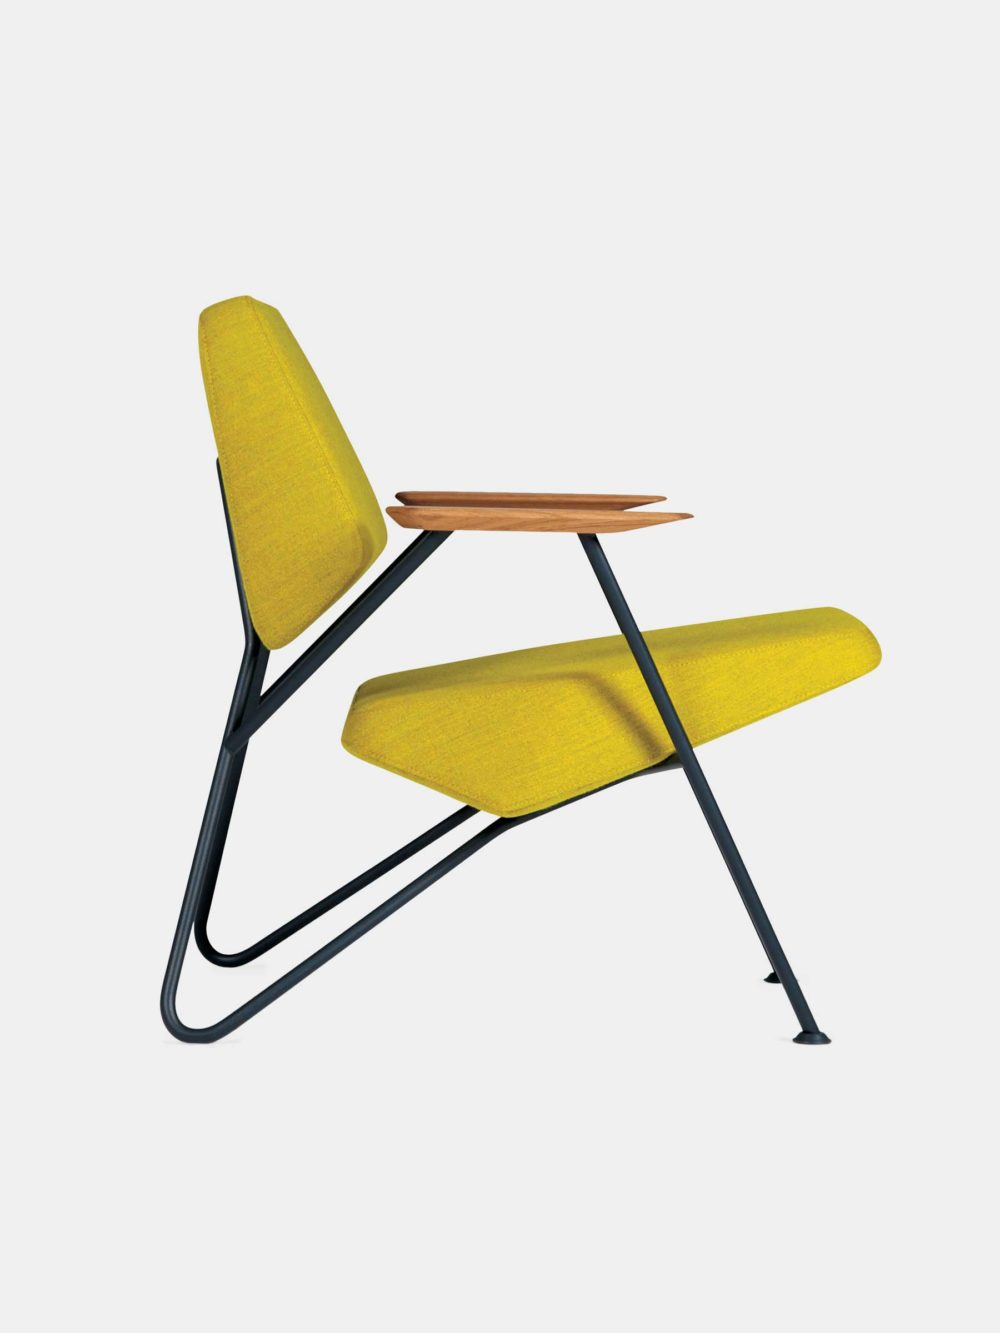 PROSTORIA POLYGON ARMCHAIR (yellow) - available at utopiast.com